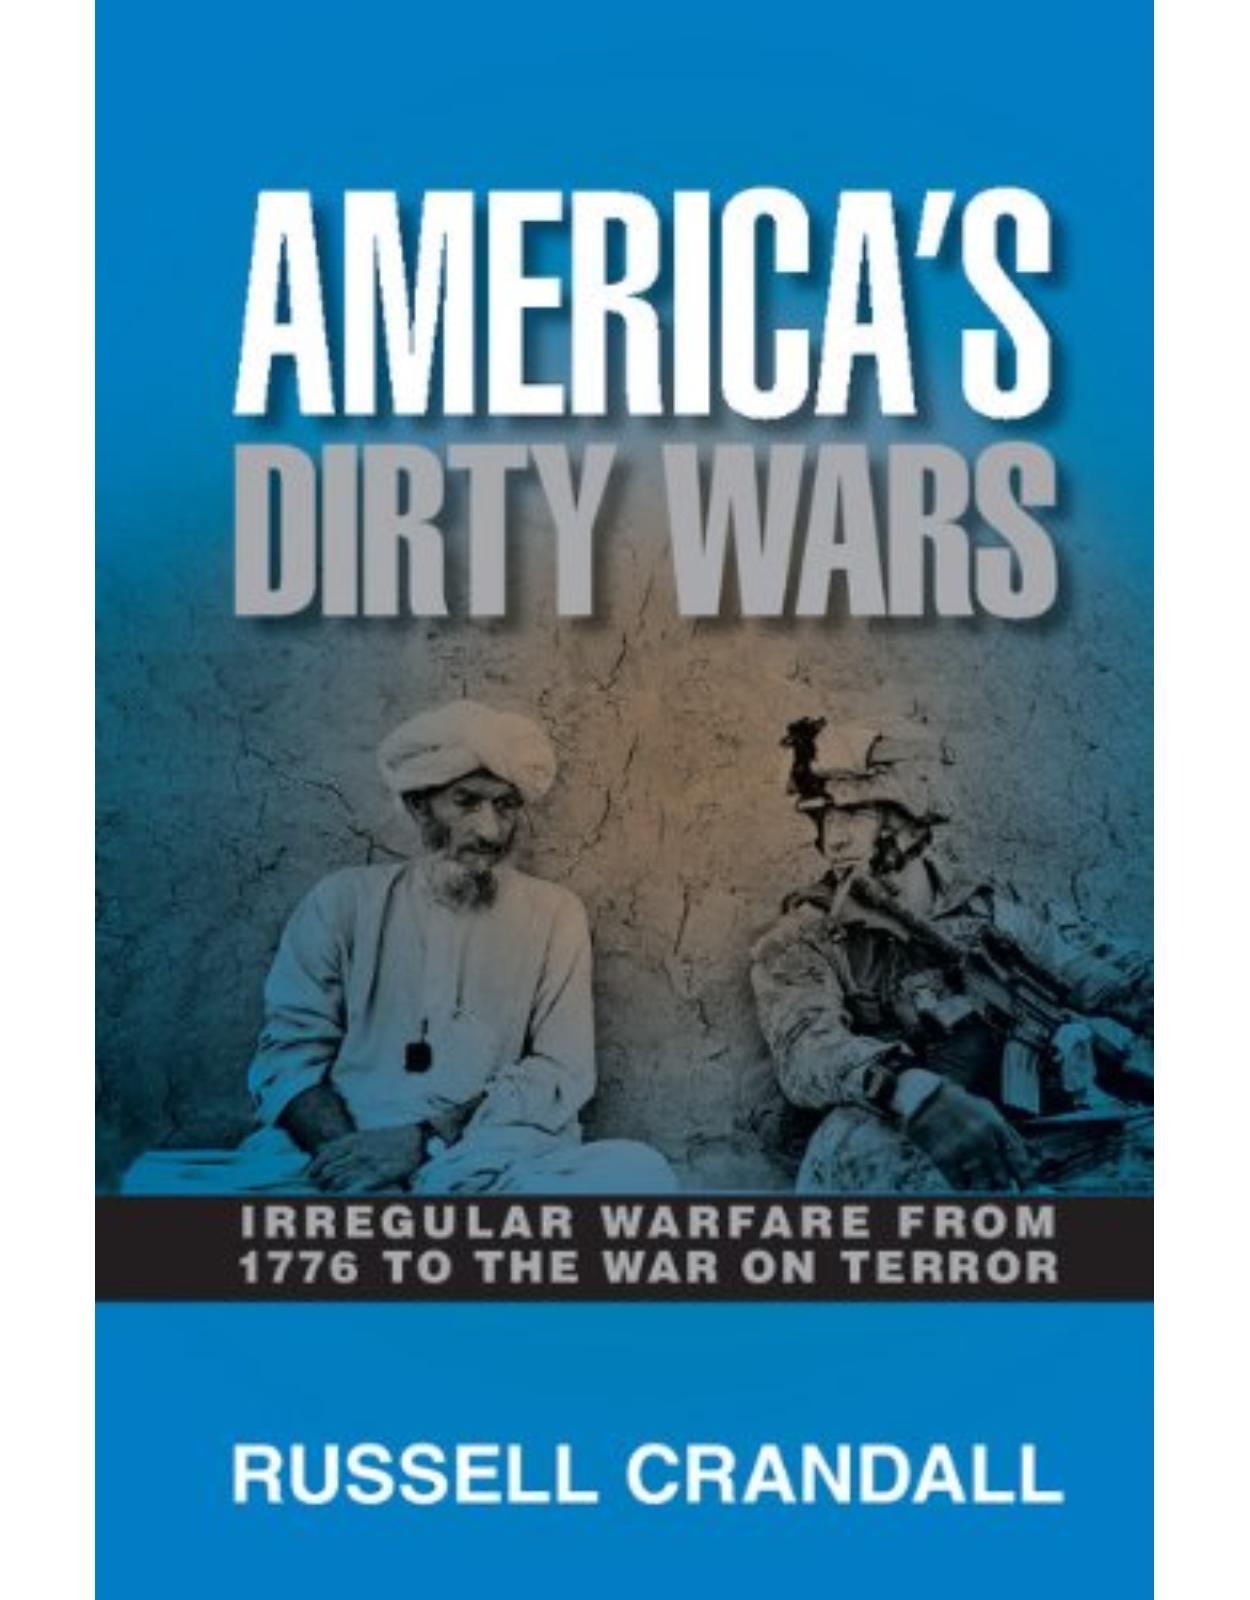 AmericaÂ's Dirty Wars: Irregular Warfare from 1776 to the War on Terror